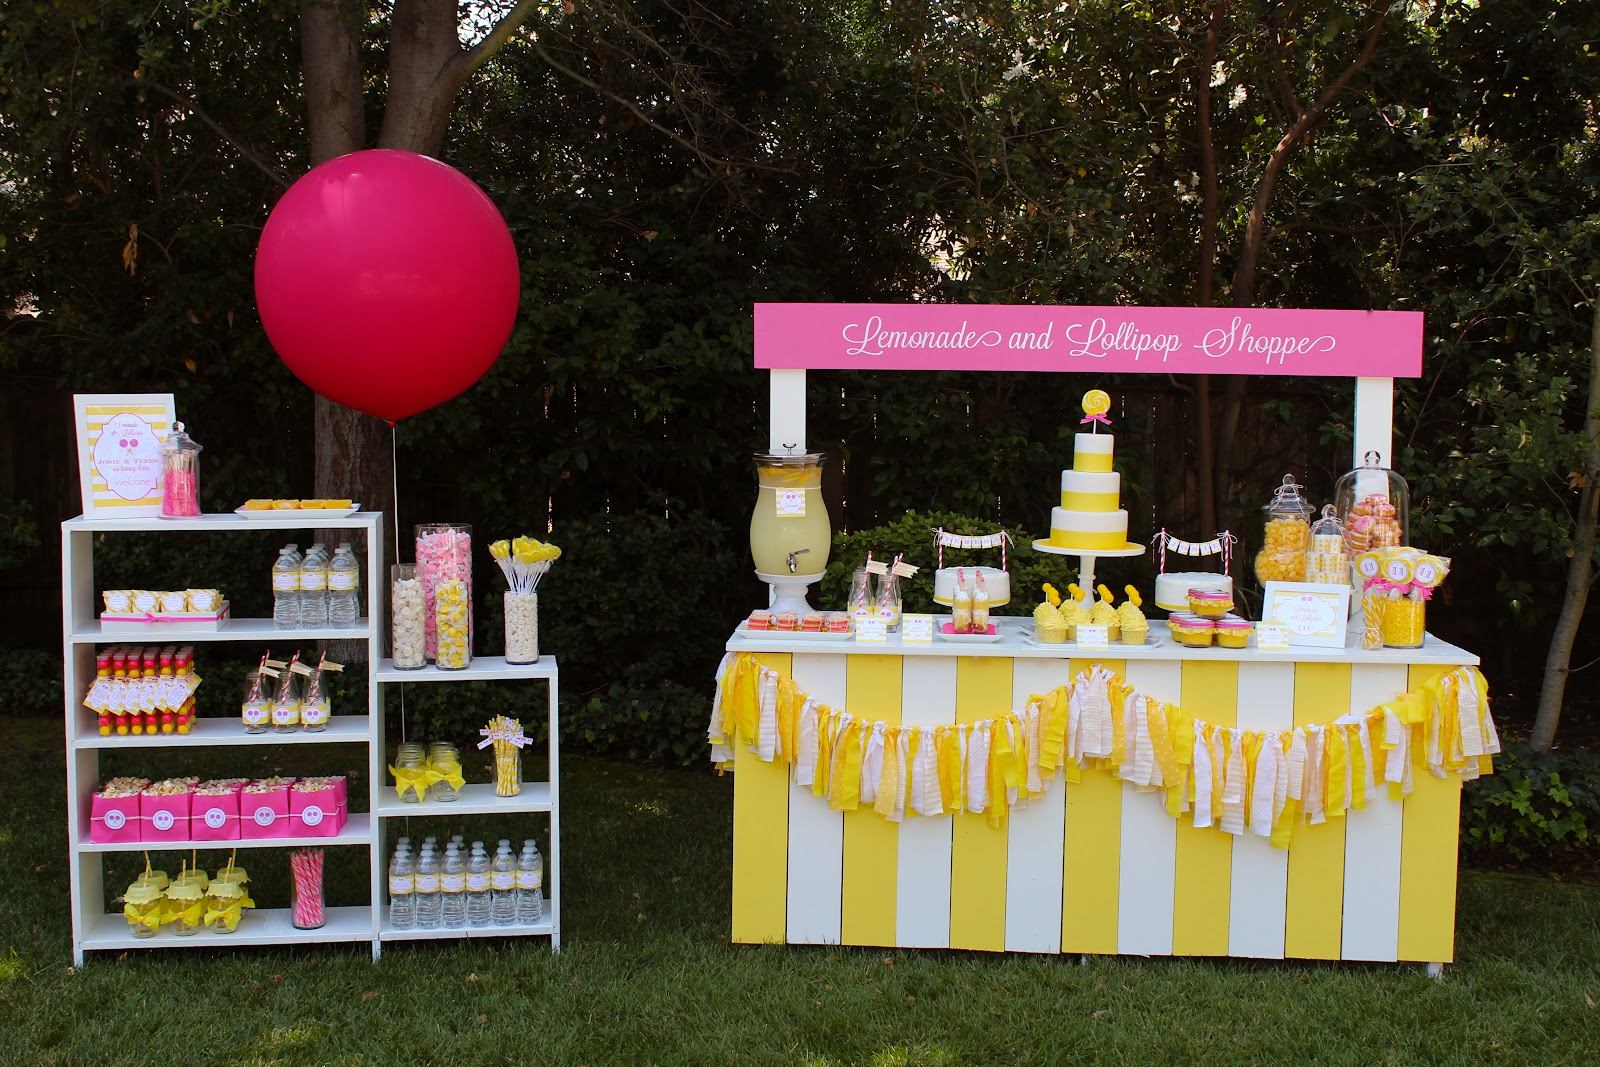 Lollipops and lemonade bloom designs for Stand ideas